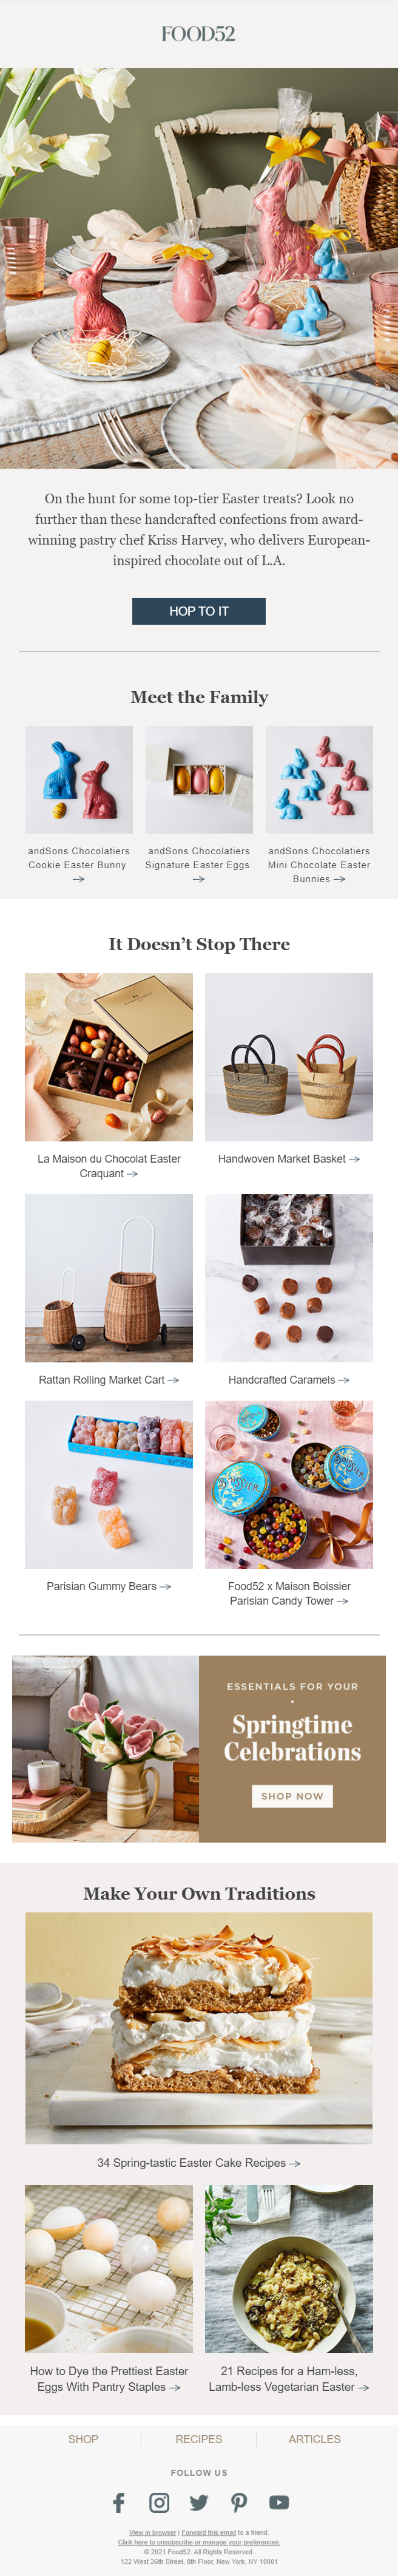 Easter email campaign by Food 52